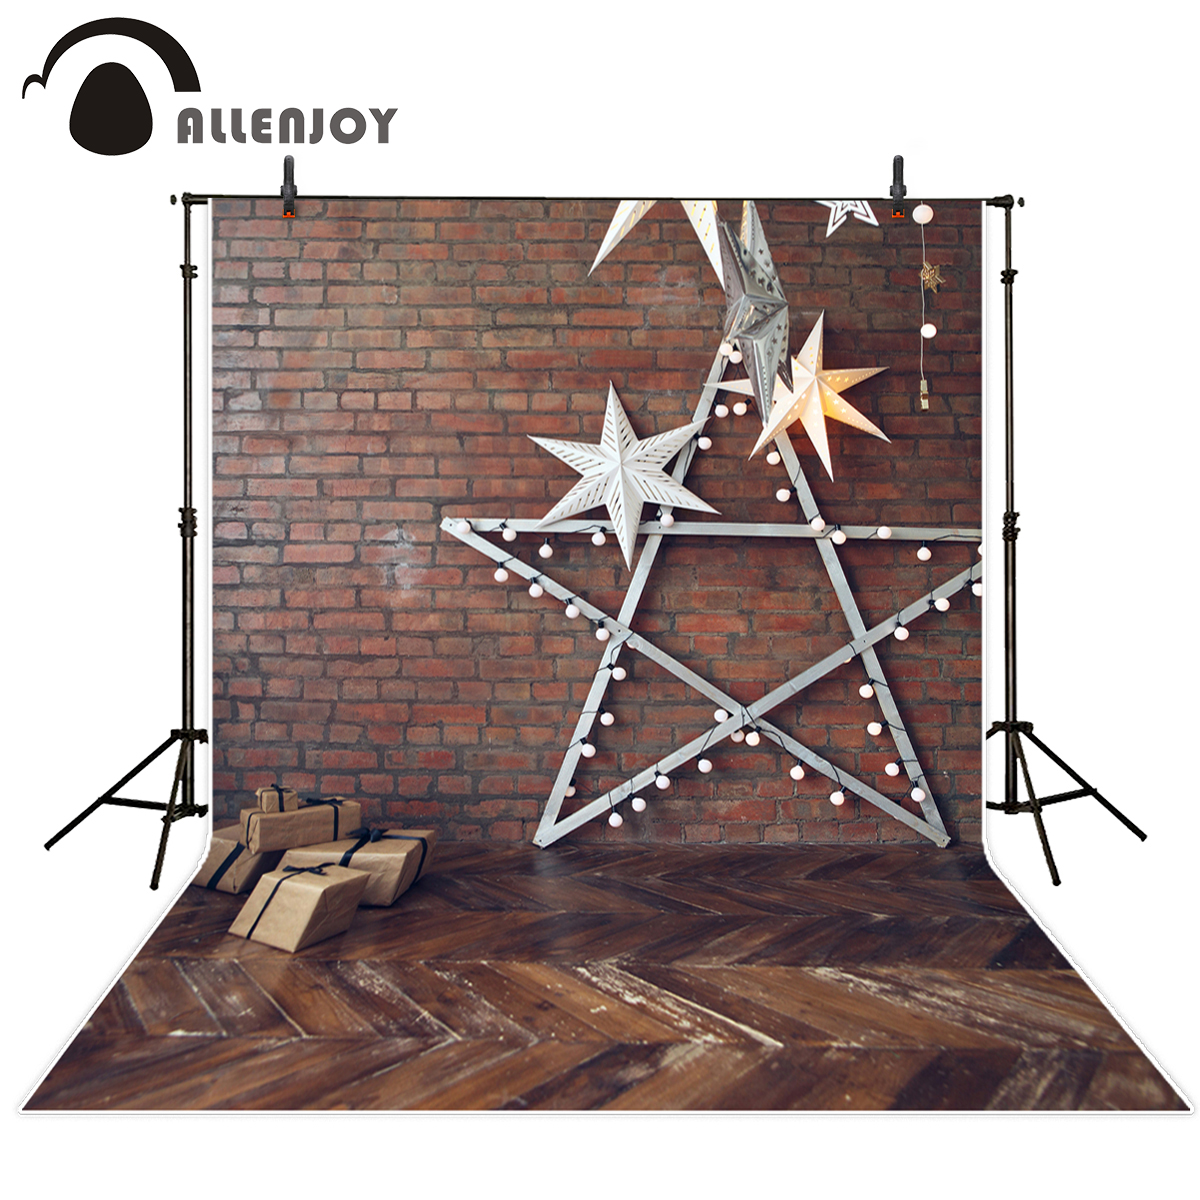 Allenjoy photography backdrops brick wall snowflake star wood floor decor backgrounds for photo studio photo background vinyl retro flowering blossom pattern voile gossamer scarf